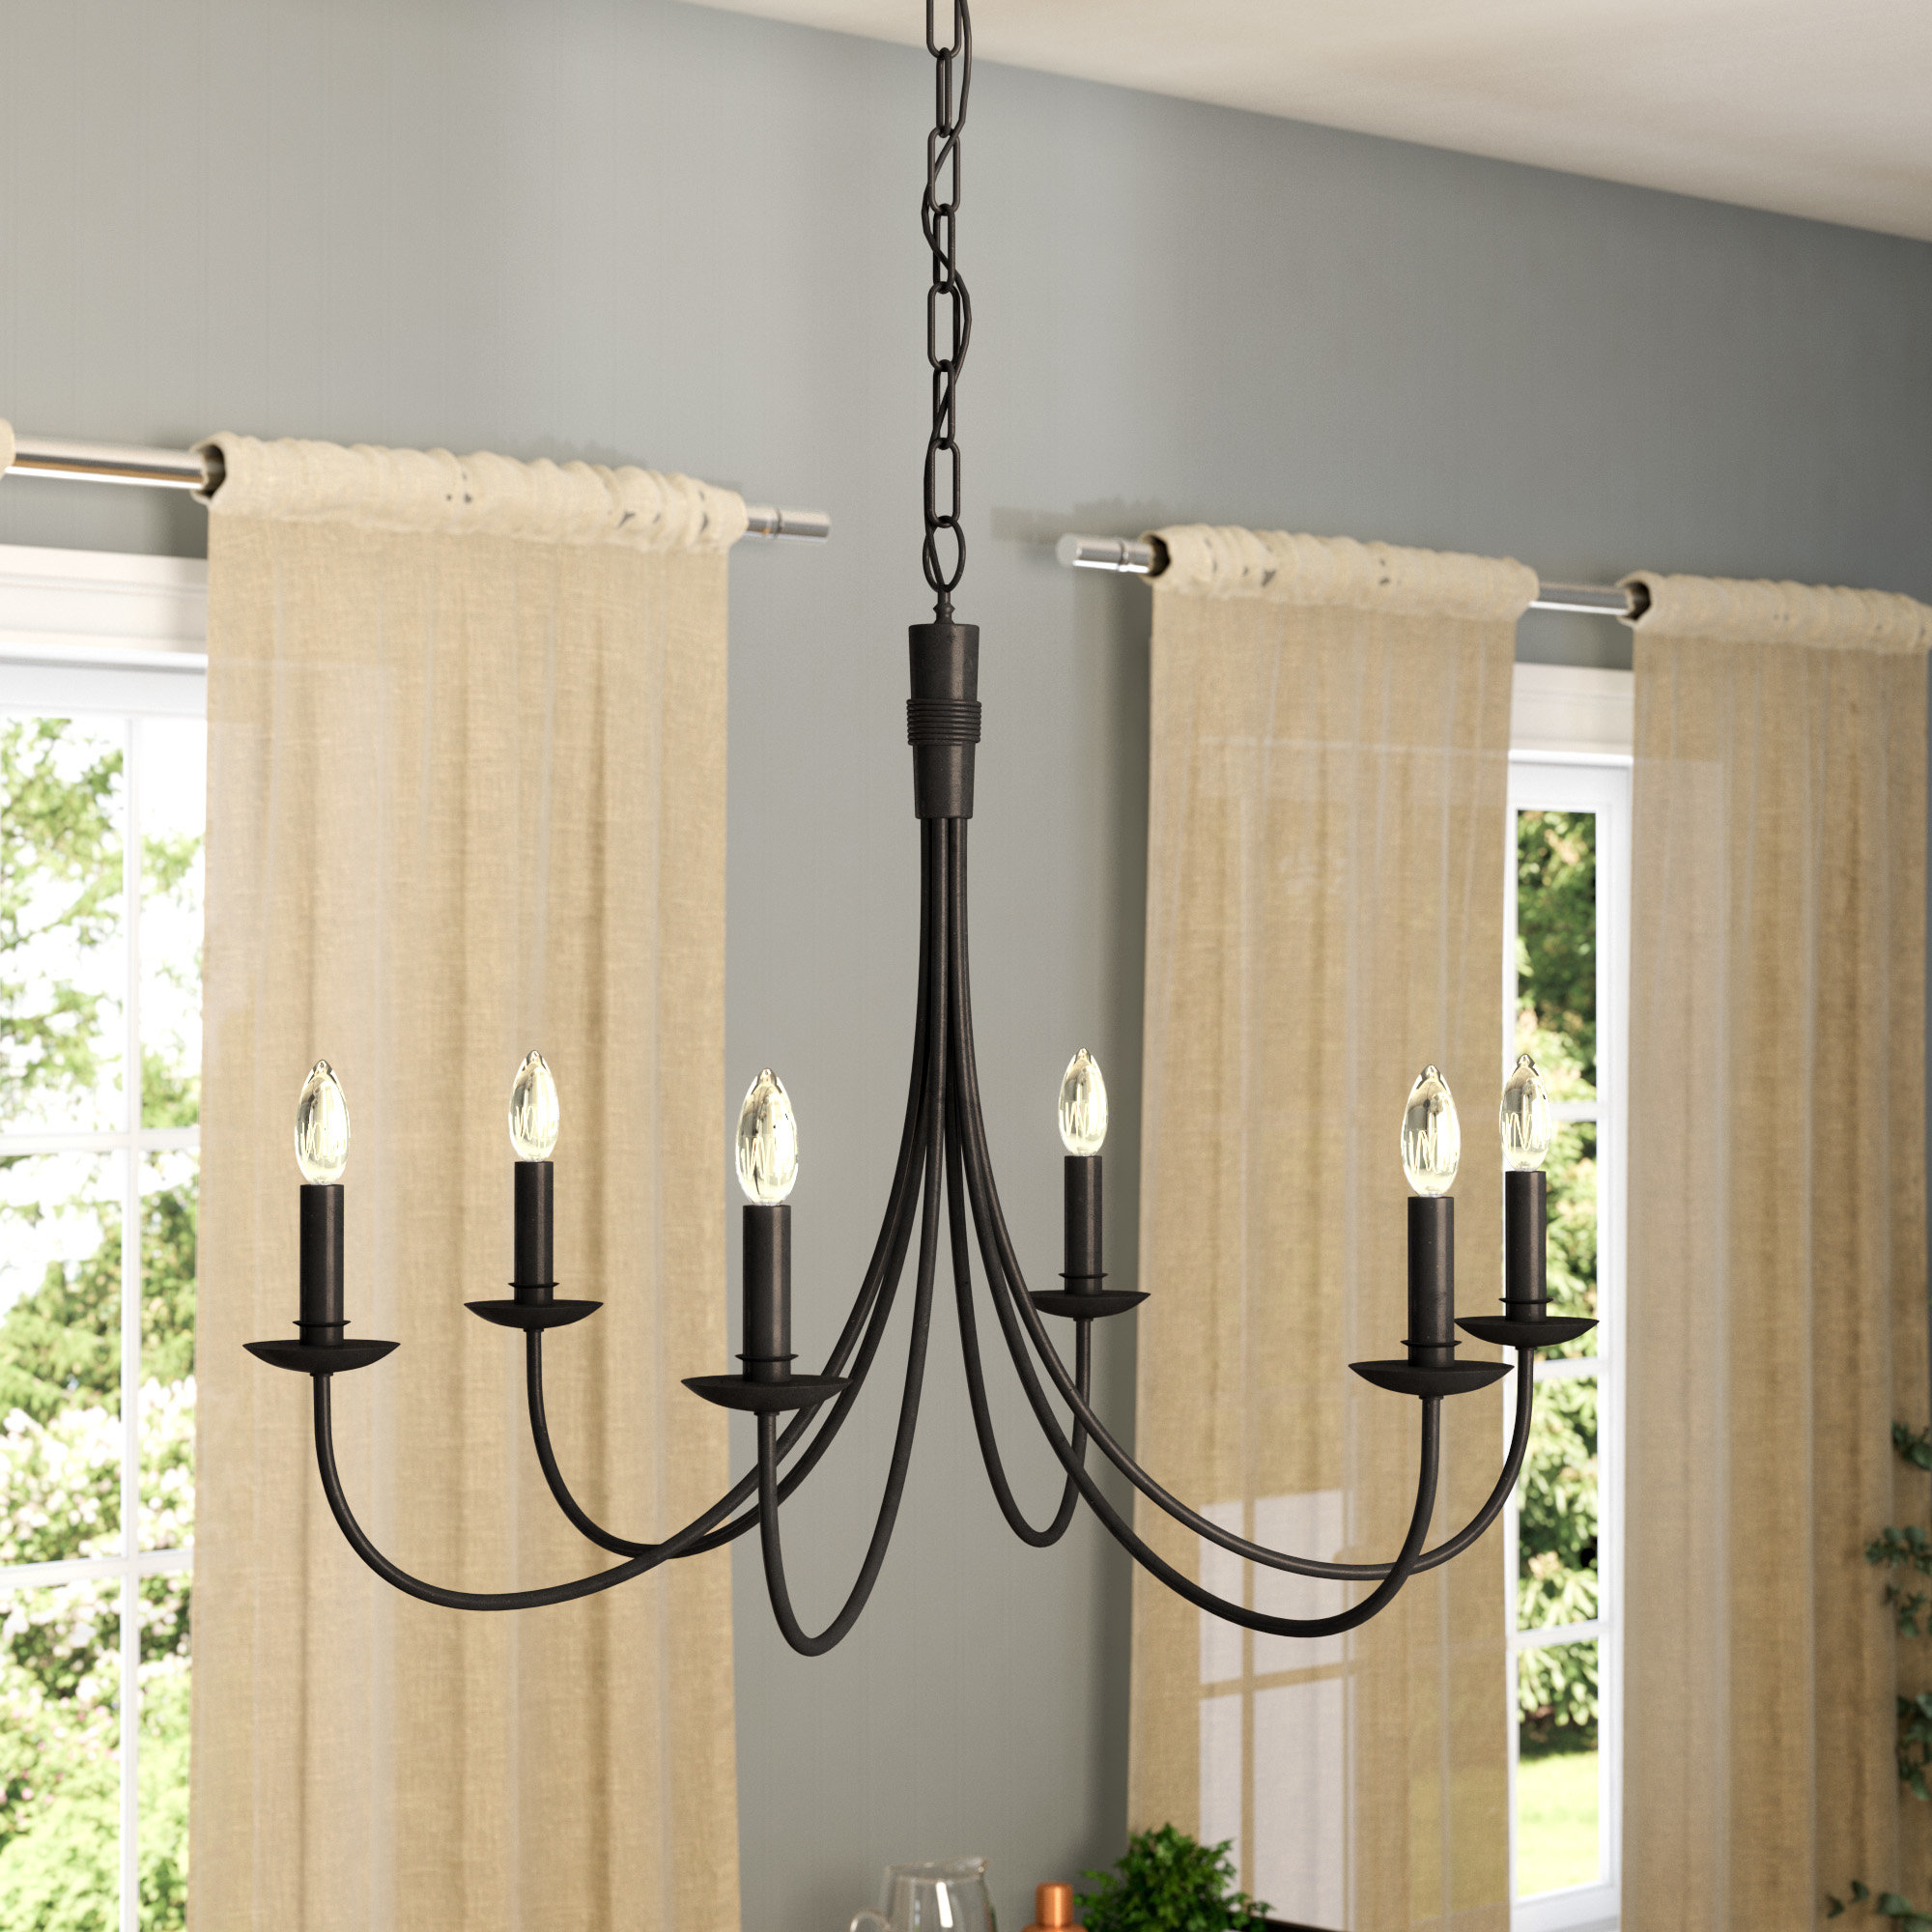 Trendy Souders 6 Light Candle Style Chandelier Within Diaz 6 Light Candle Style Chandeliers (View 22 of 25)